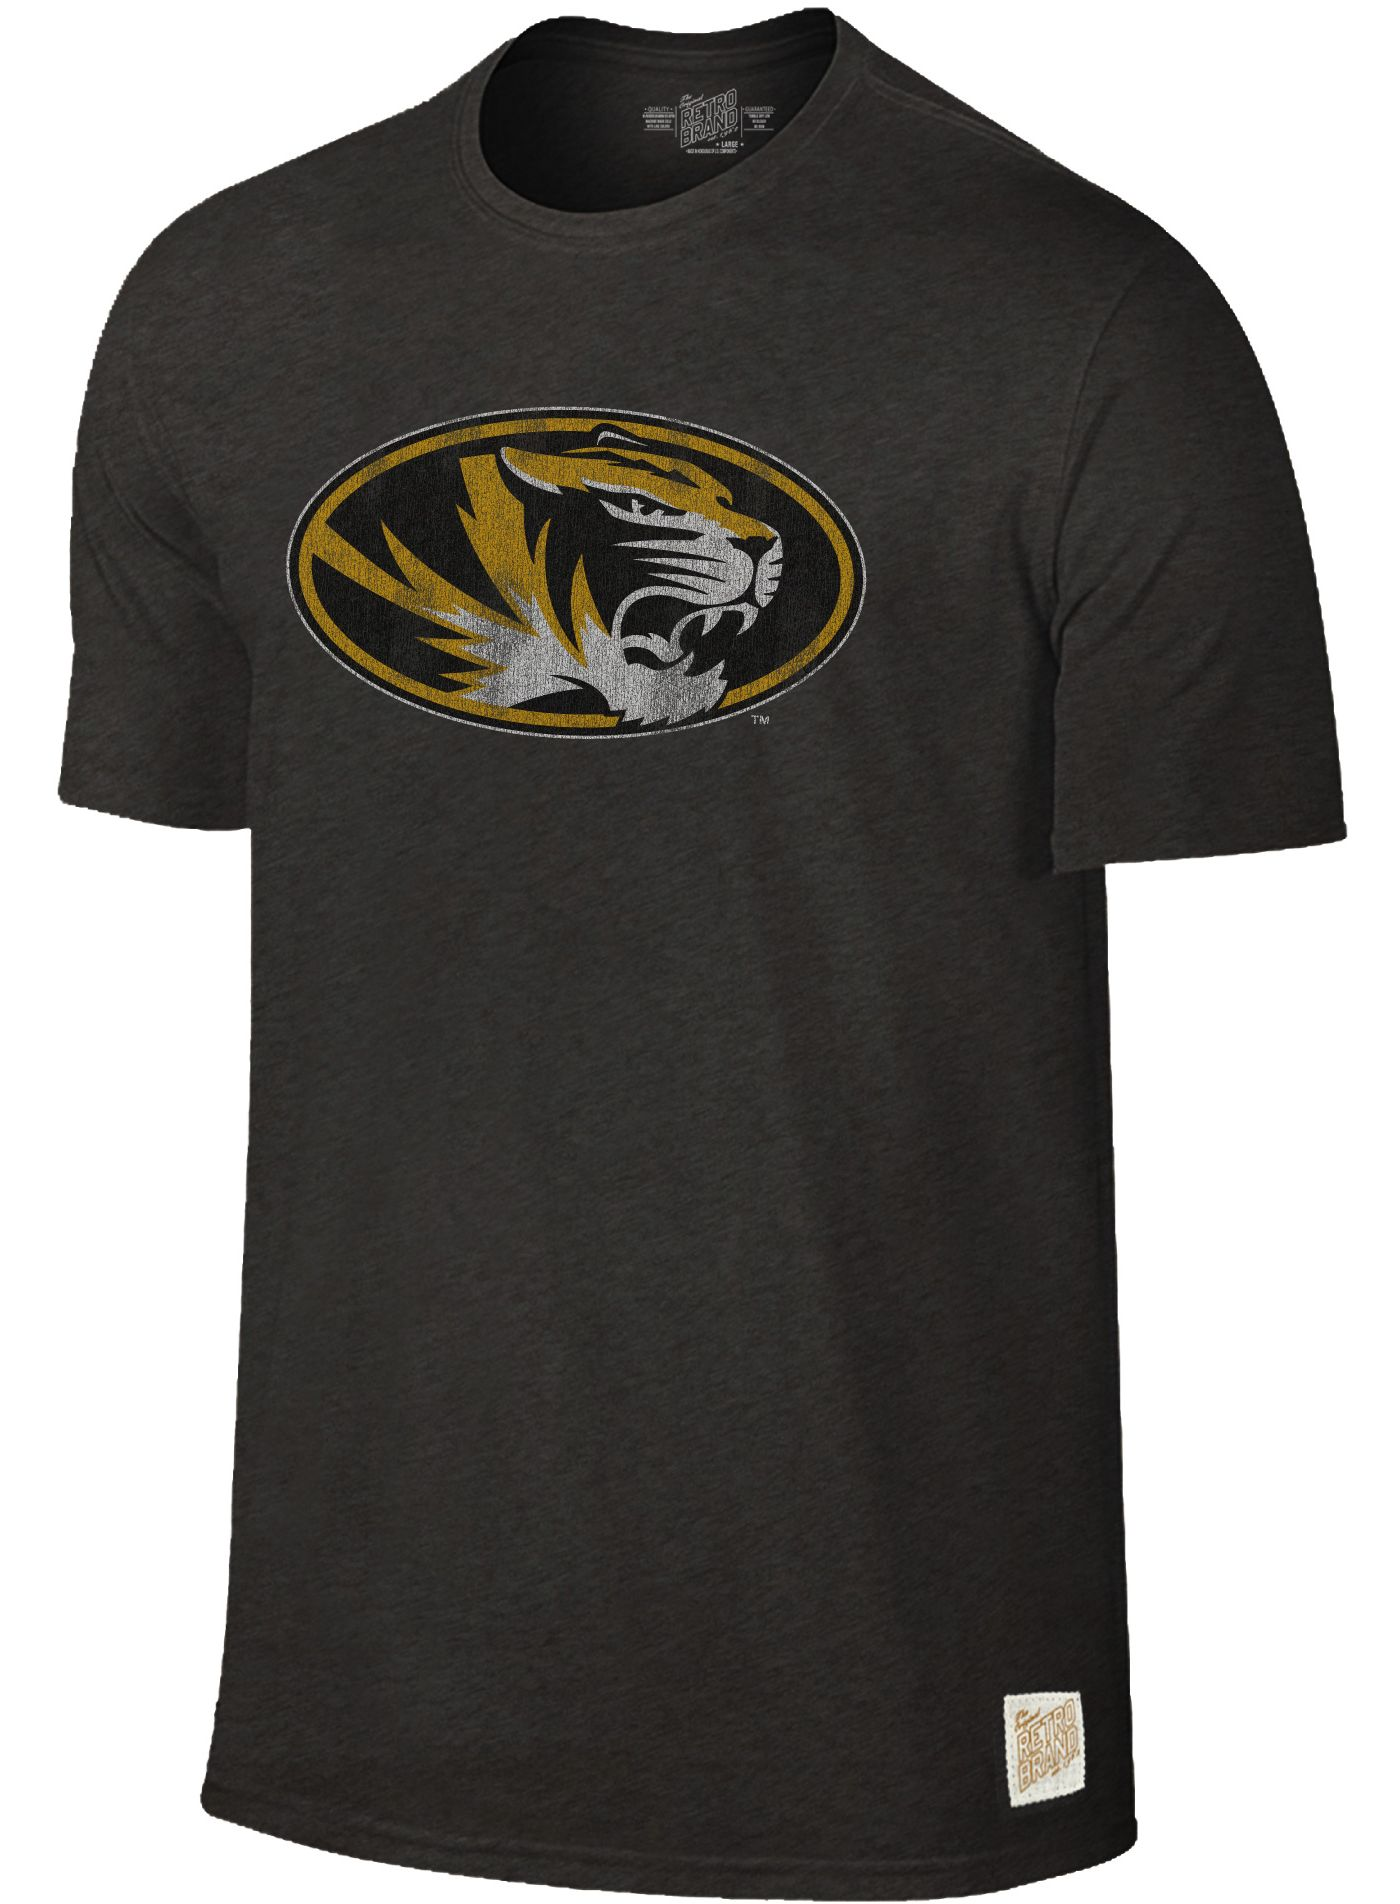 Original Retro Brand Men's Missouri Tigers Dual Blend Black T-Shirt